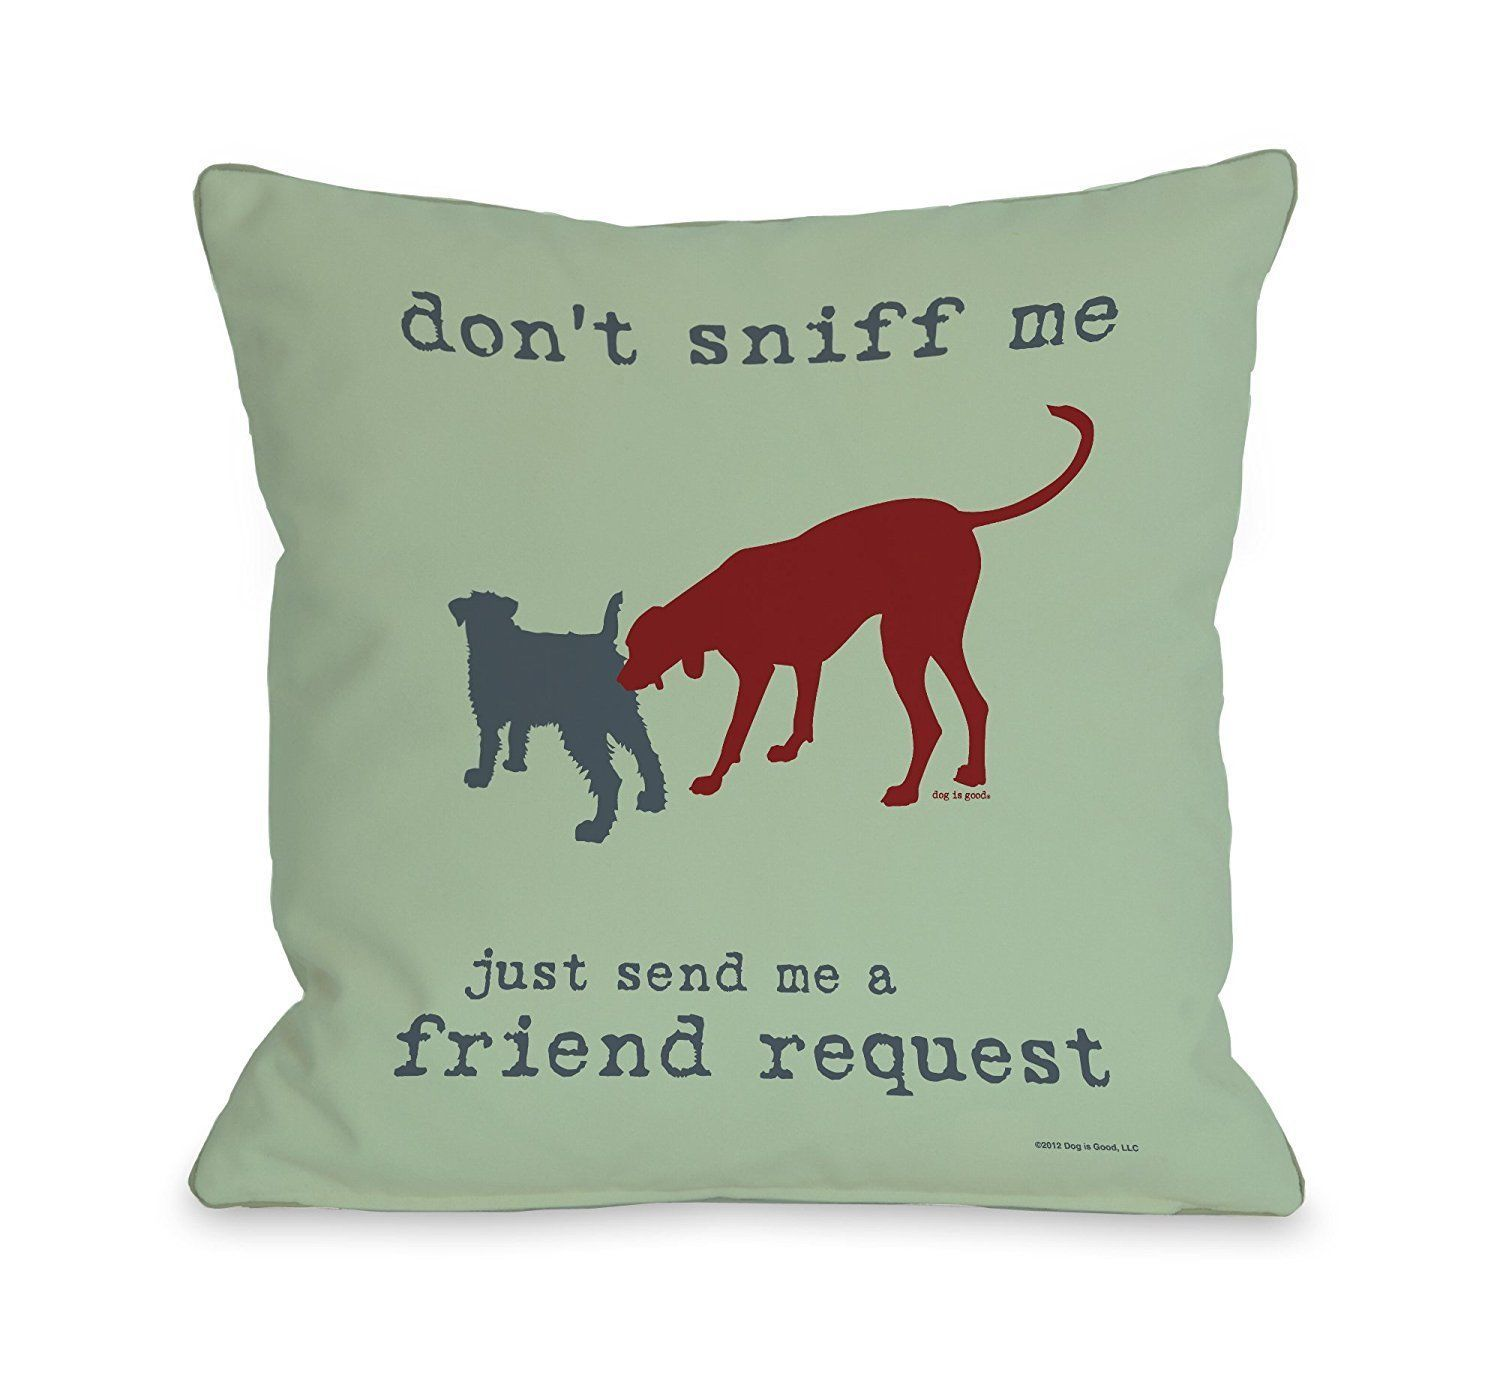 Primary image for One Bella Casa Friend Request Mint Throw Pillow, 26 by 26-Inch